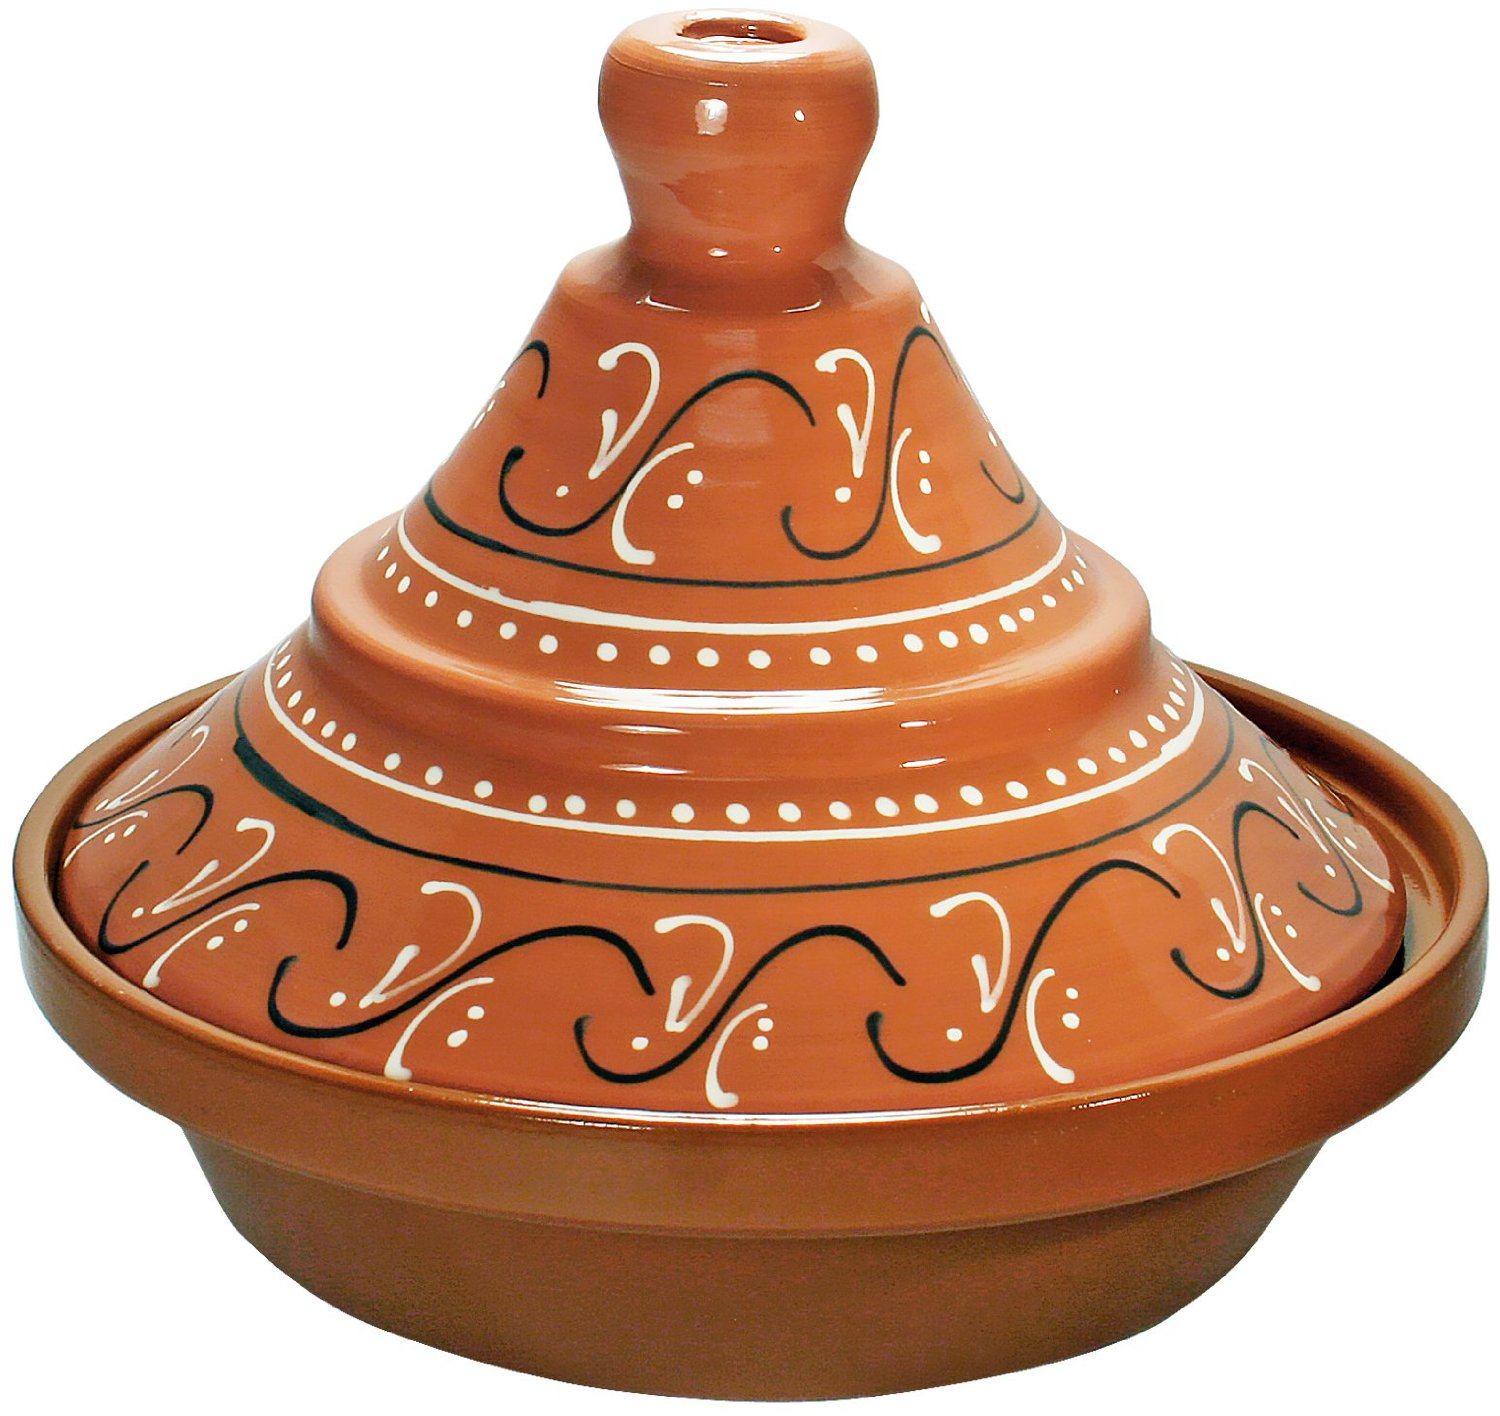 Reston Lloyd Tagine